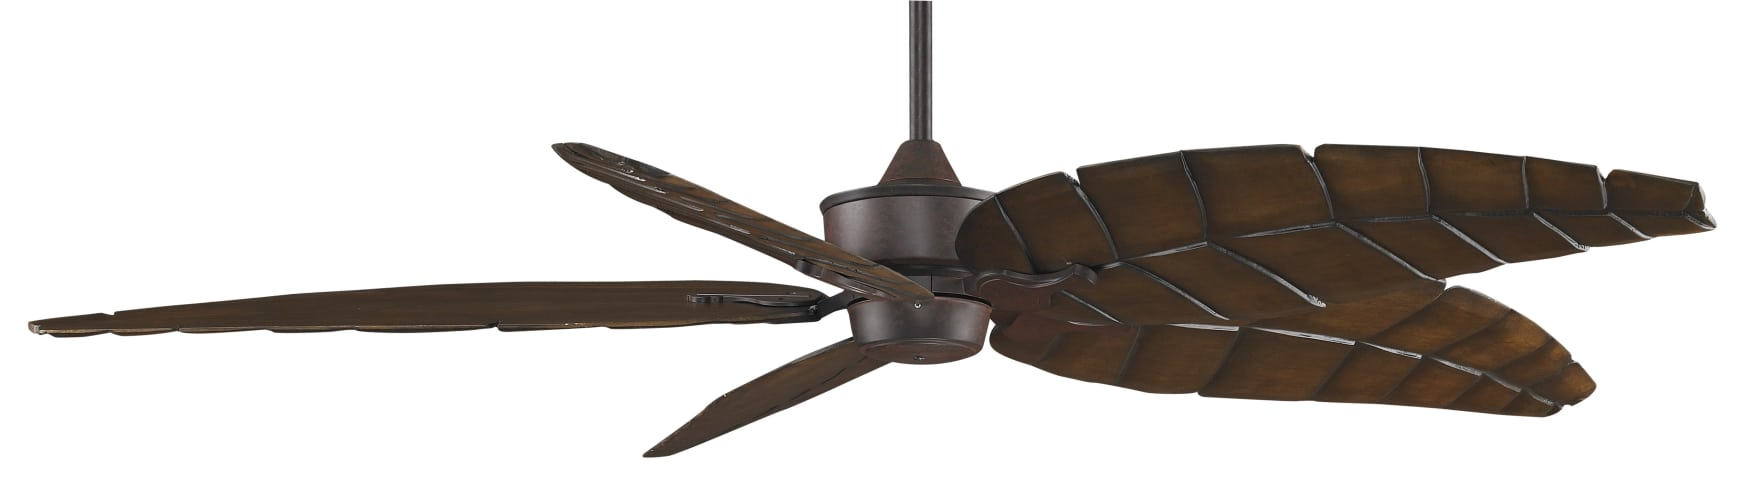 Fanimation mad3250rs b5300wa rust with walnut carved leaf wood fanimation mad3250rs b5300wa rust with walnut carved leaf wood blades islander dc islander 5 blade 52 ceiling fan blades and remote control included aloadofball Gallery